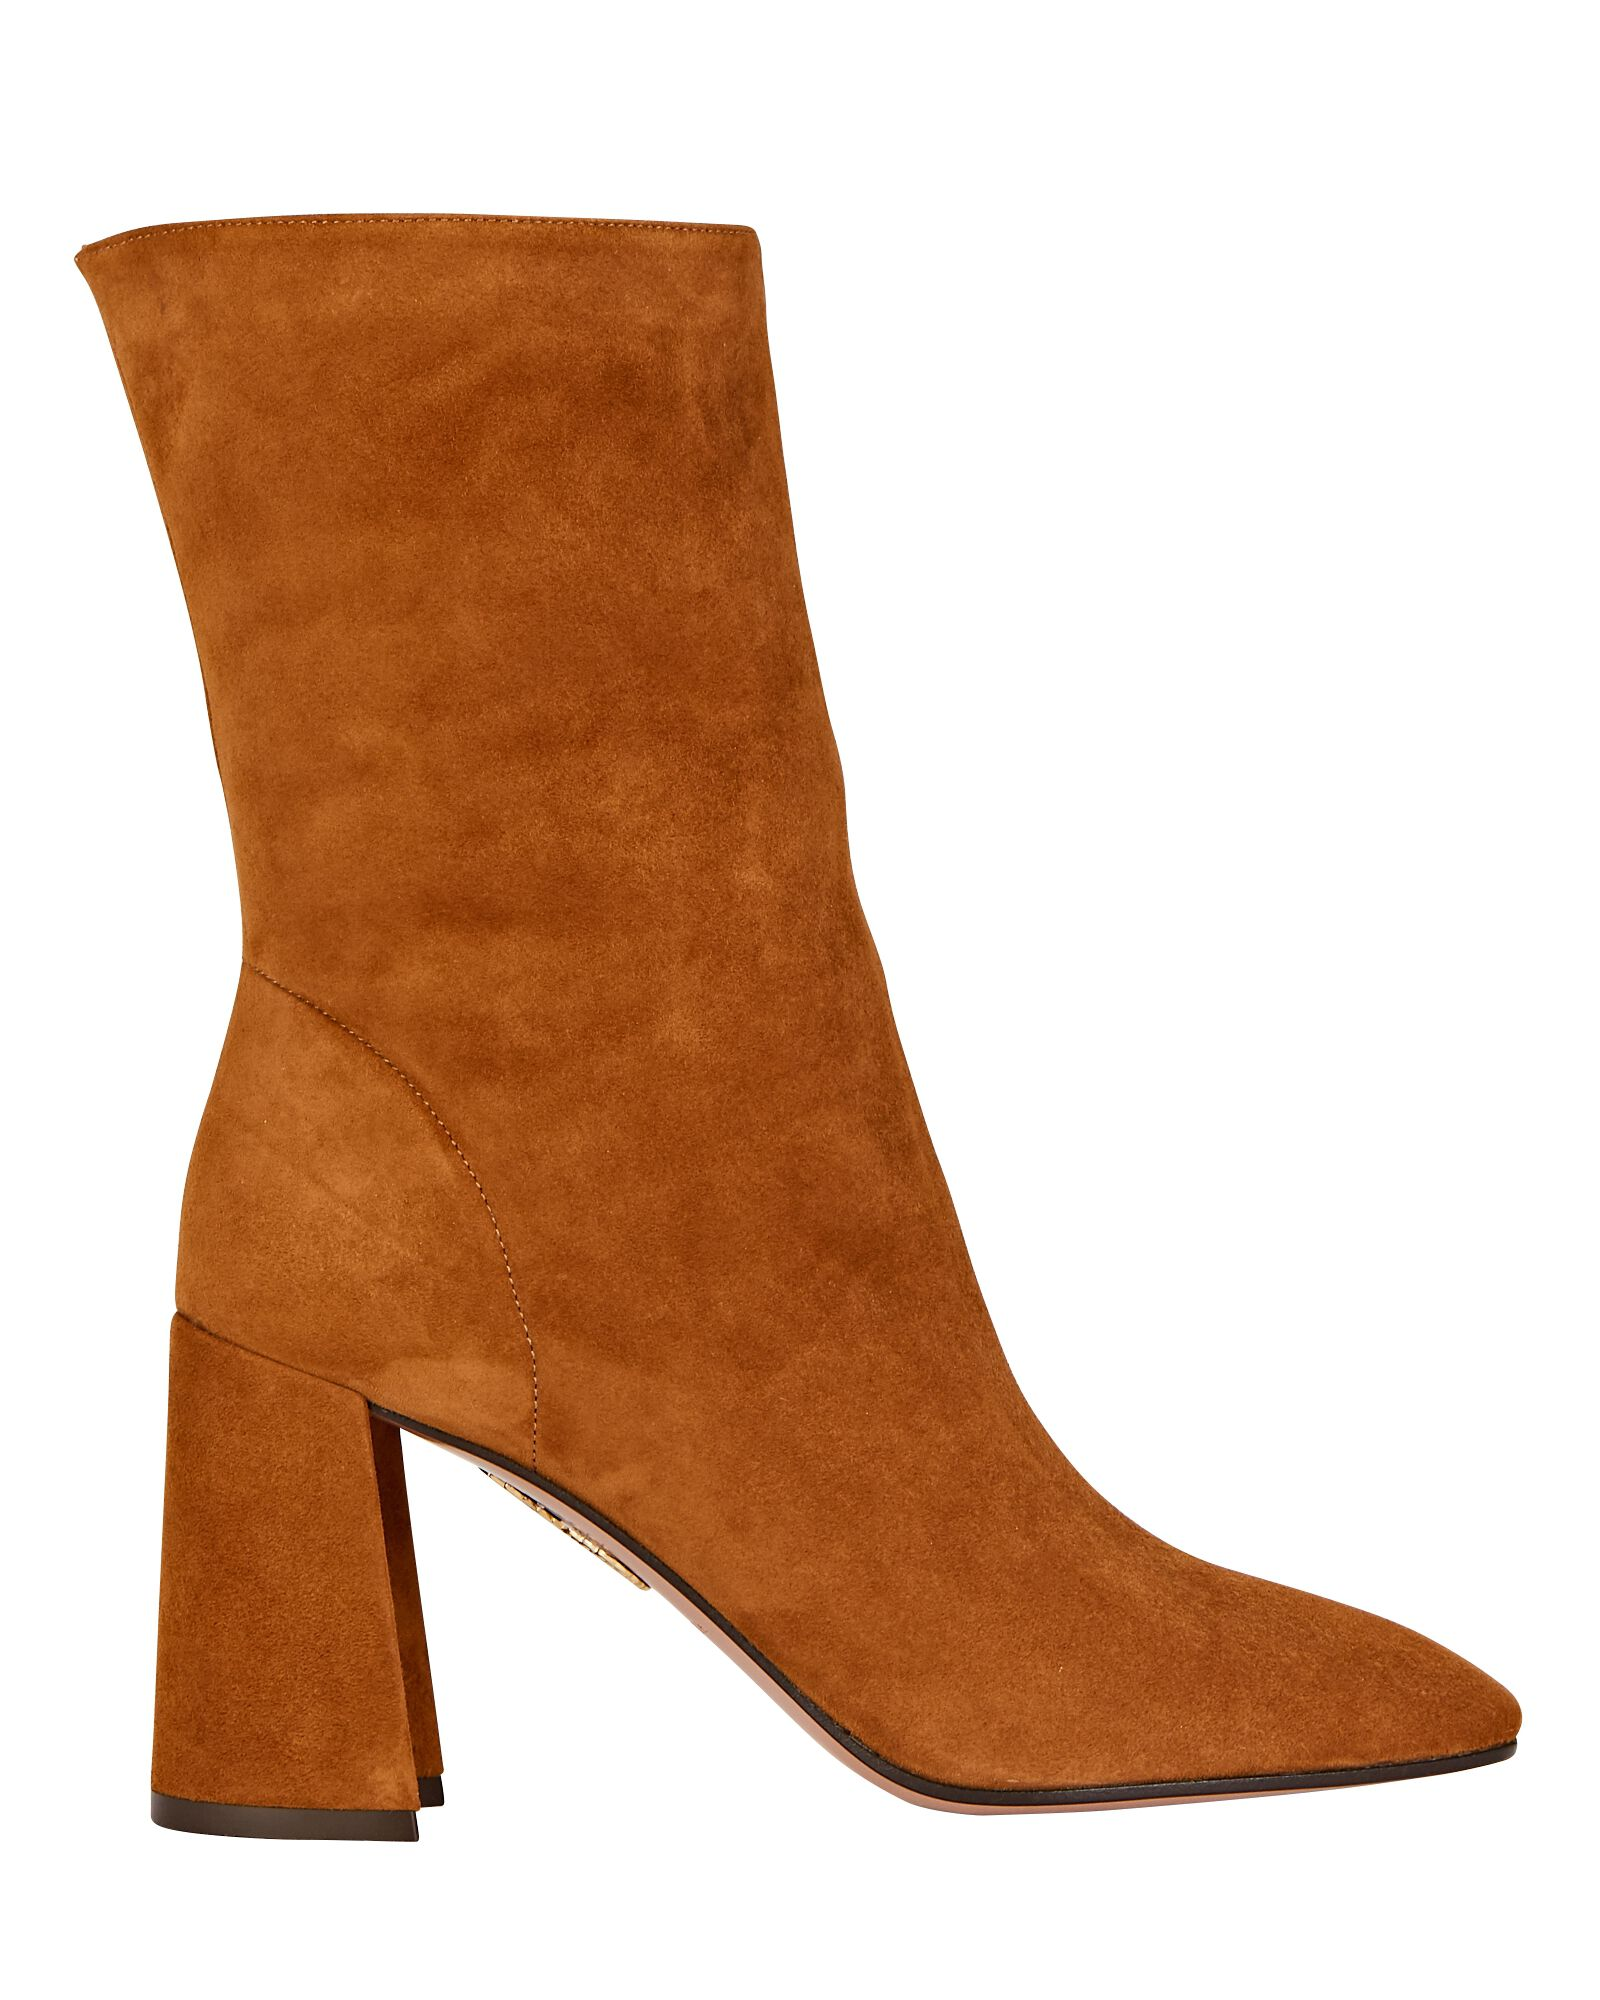 Boogie 85 Suede Ankle Boots, BROWN, hi-res